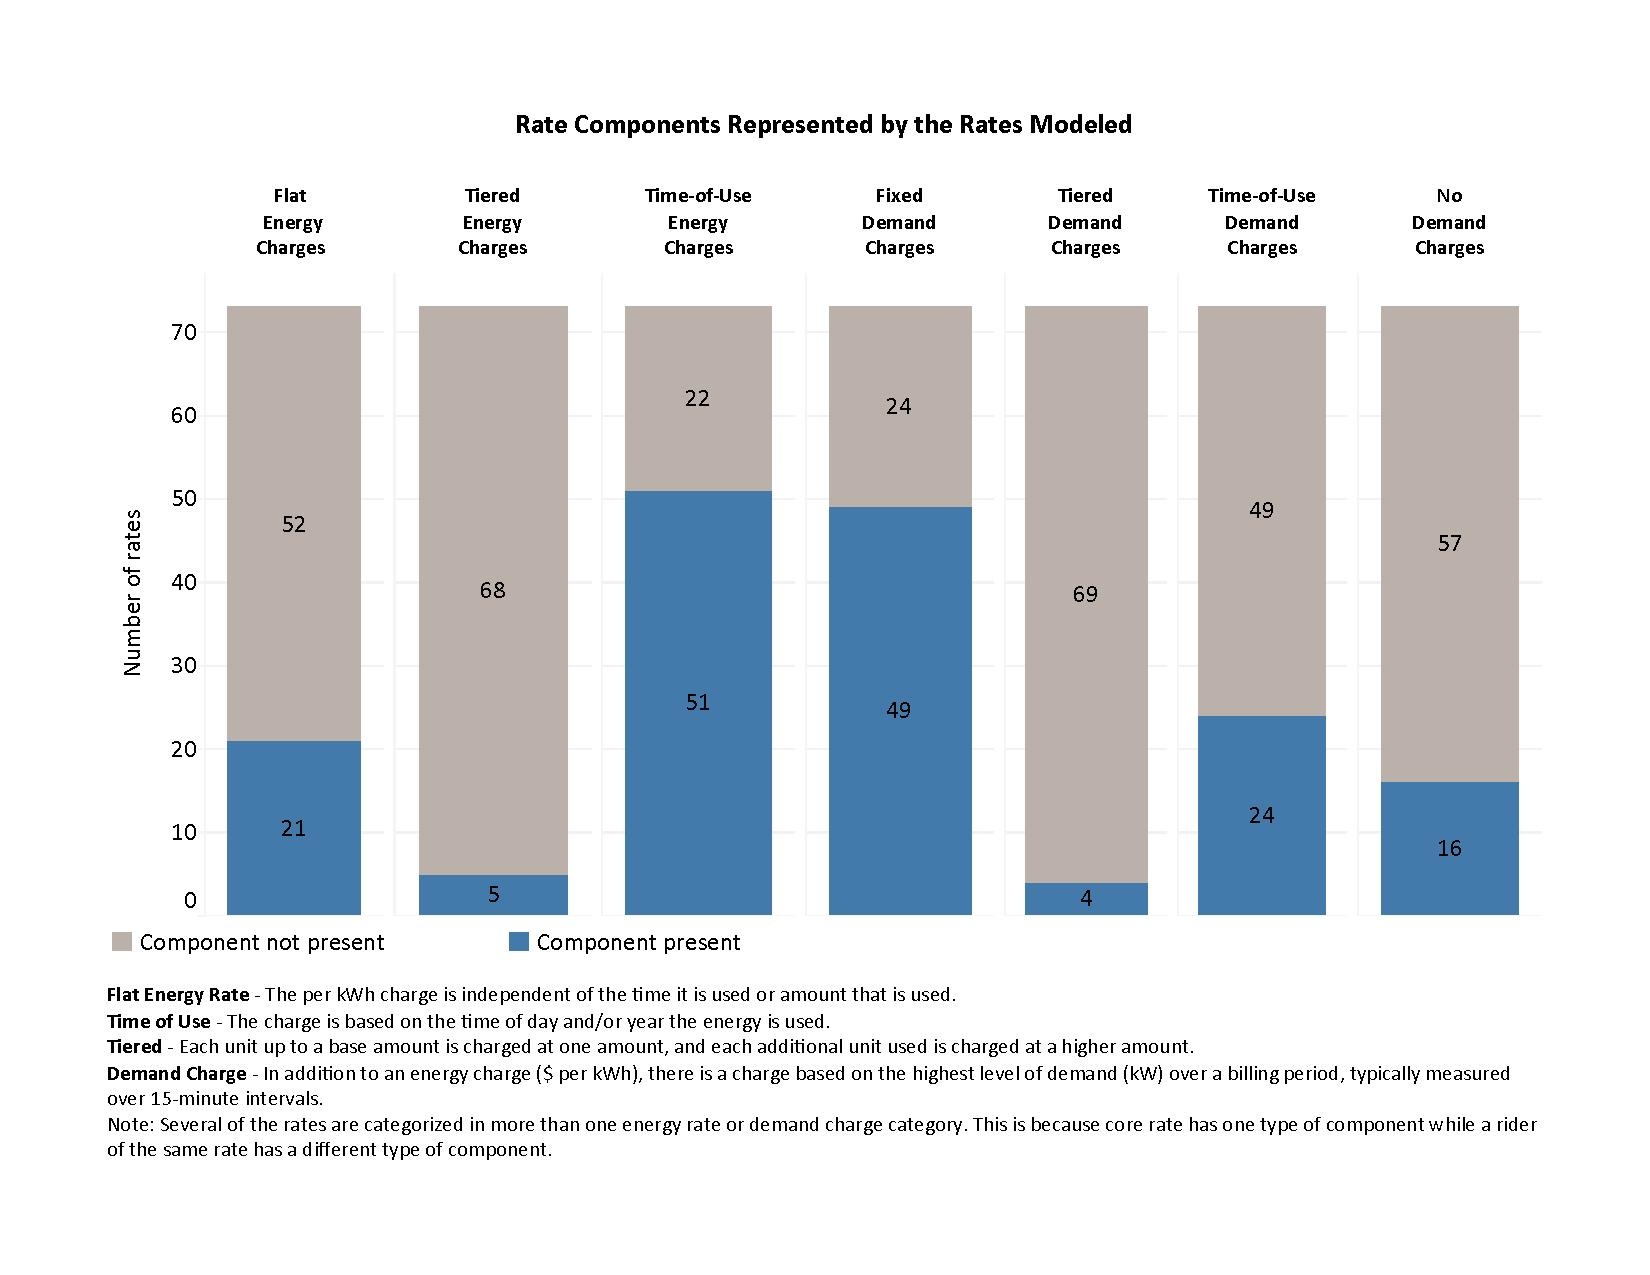 Table of Utility Rates Modeled